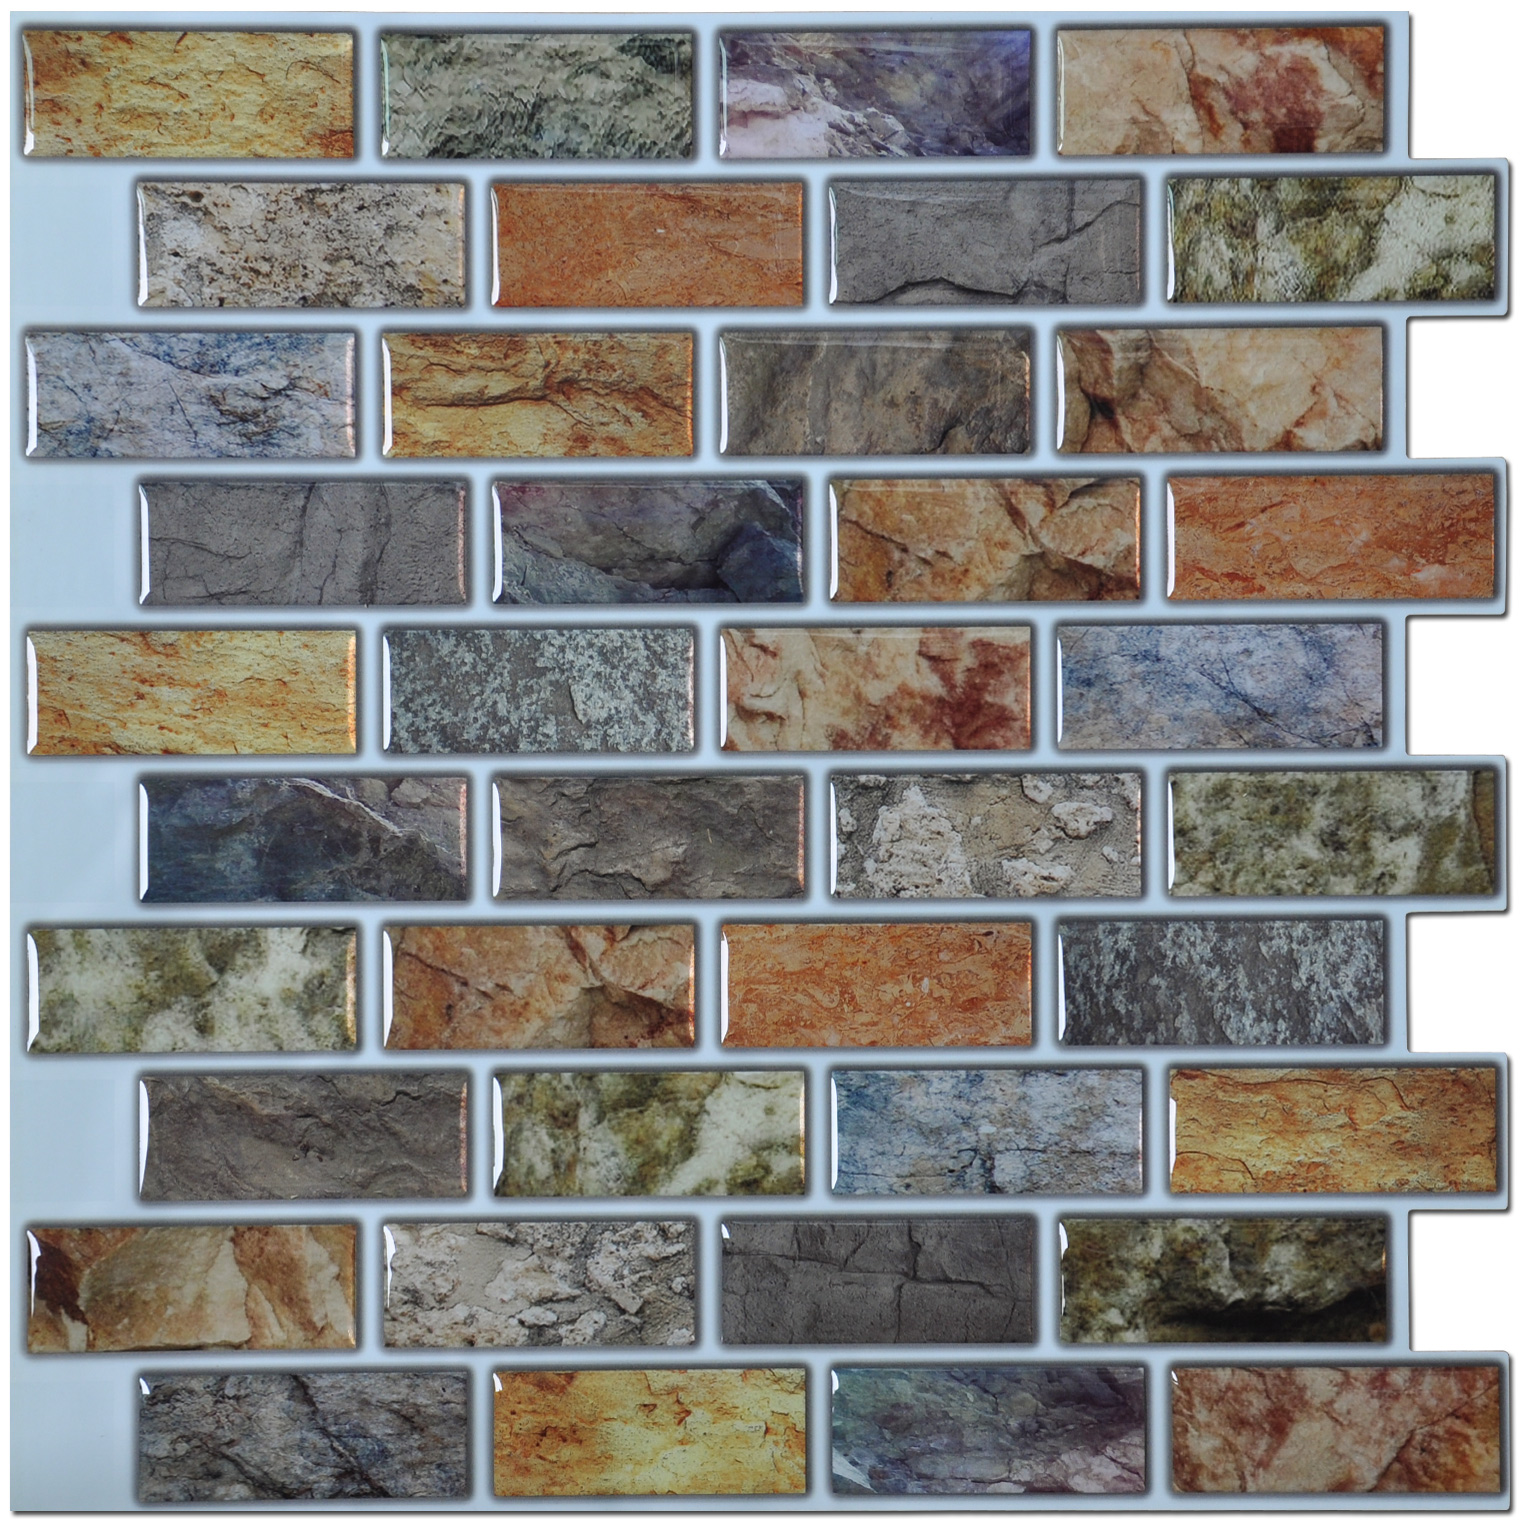 "Art3d Backsplash Peel N Stick Tiles Kitchen / Bathroom Backsplash Tiles 12"" x 12"" Pack of 6"